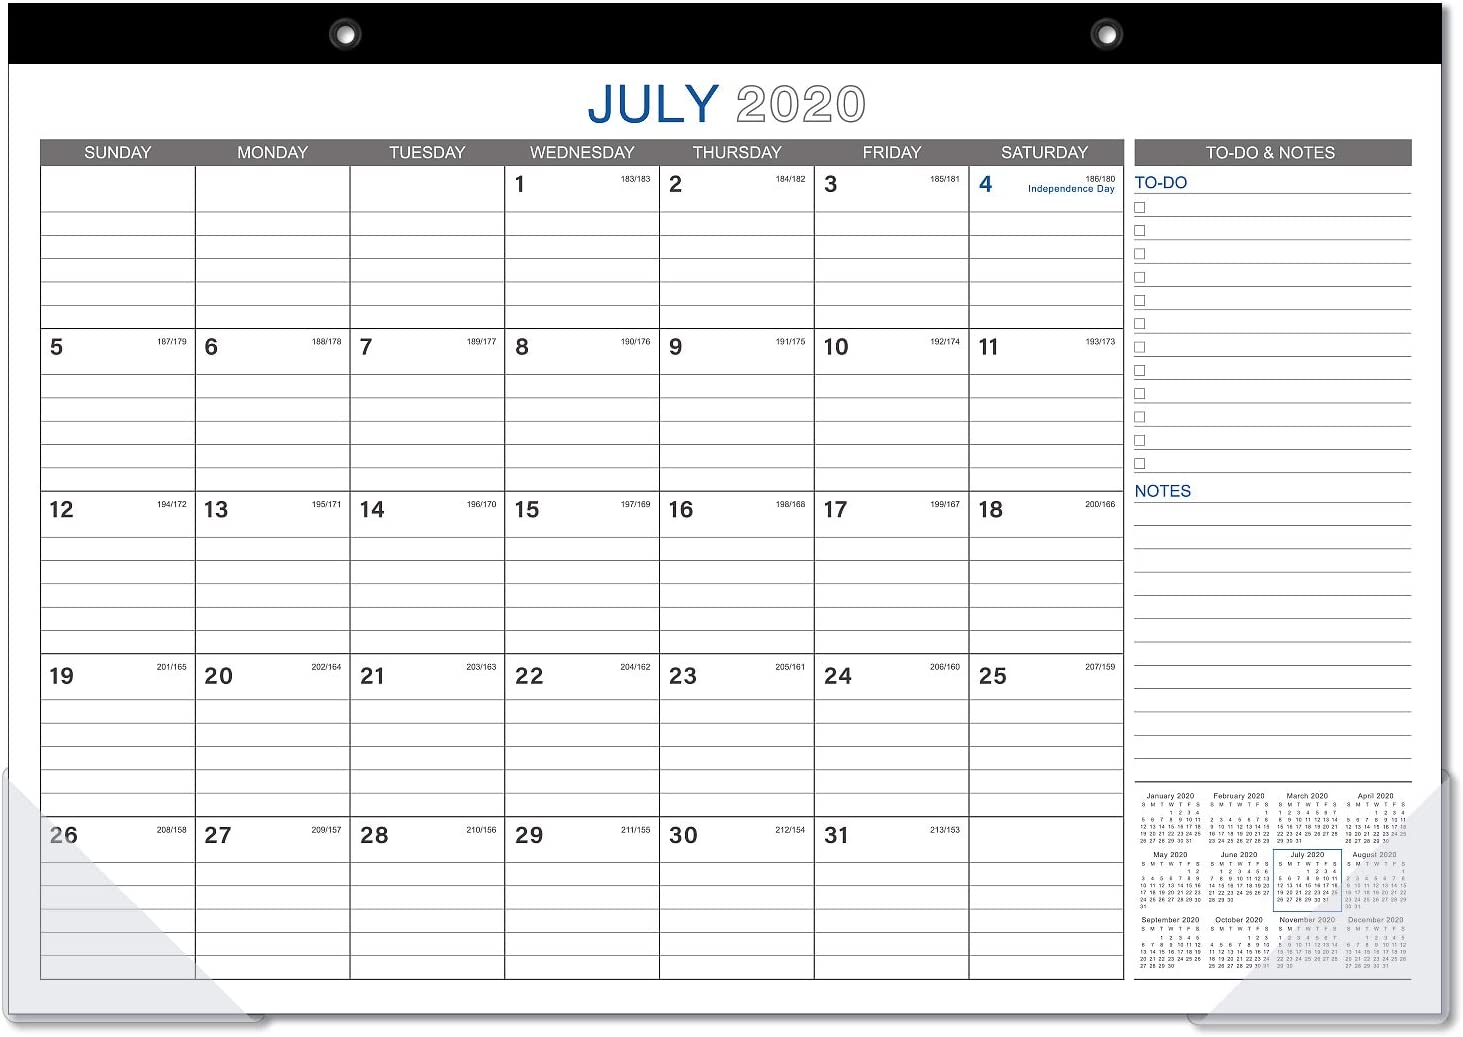 "2020-2021 Desk Calendar - 18 Months Desk Calendar with to-Do List, 17"" x 12"", Monthly Desk or Wall Calendar, January 2020 - June 2021, Large Ruled Blocks Perfect for Organizing for Home or Office"